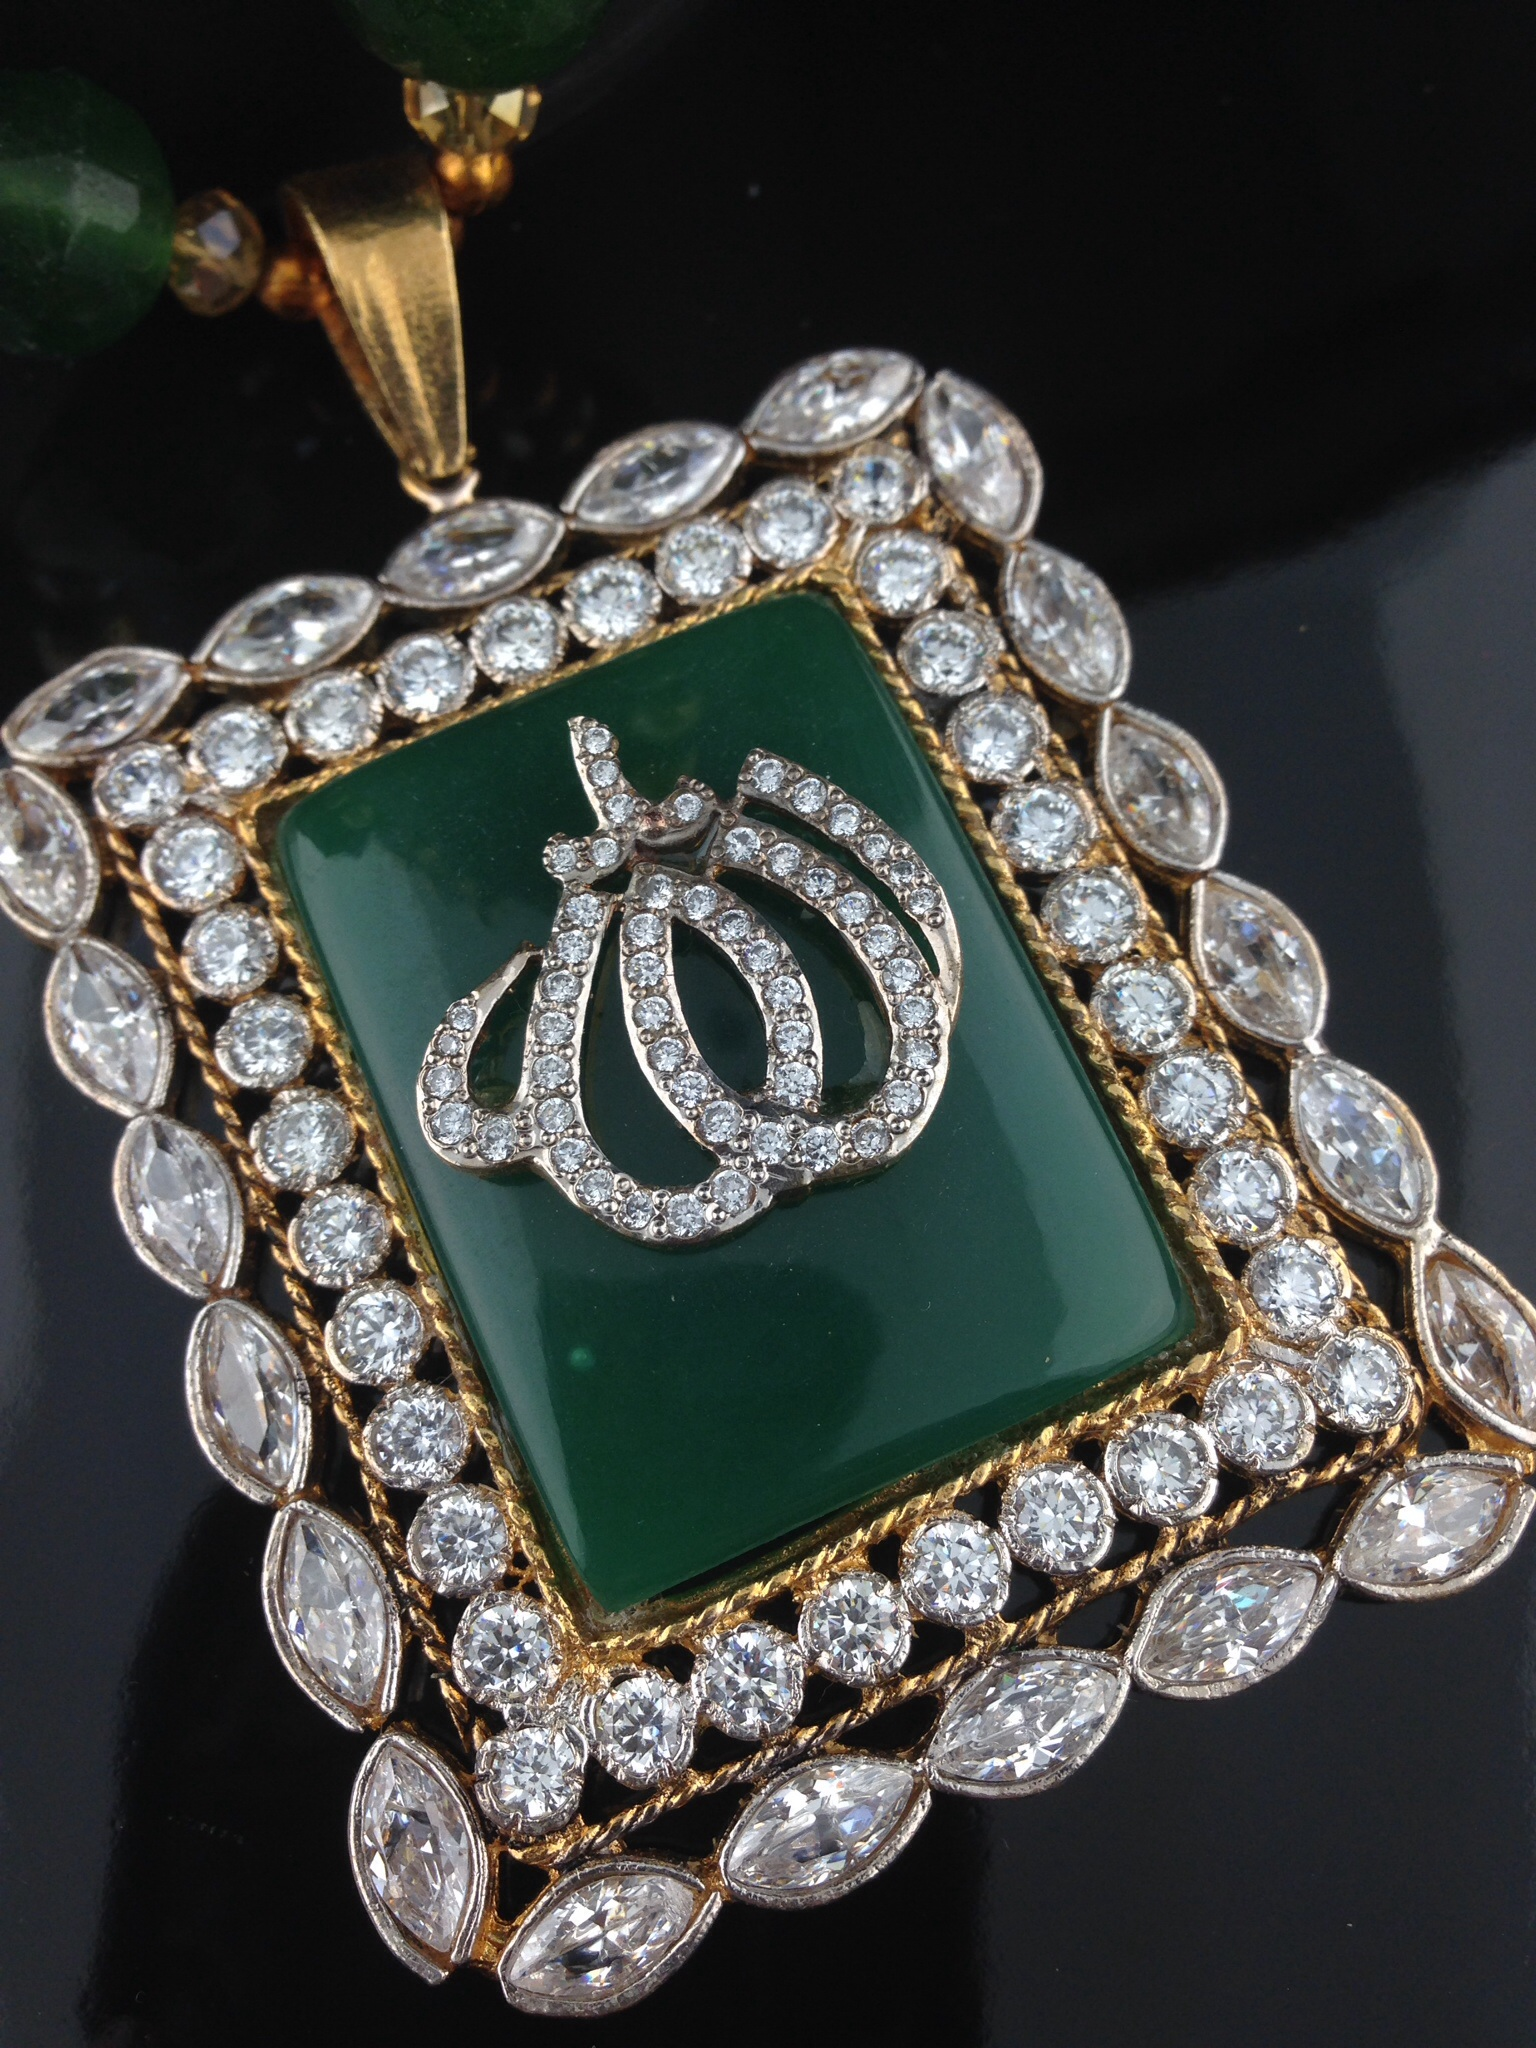 Allah CZ Emerald Pendant with Beaded Necklace